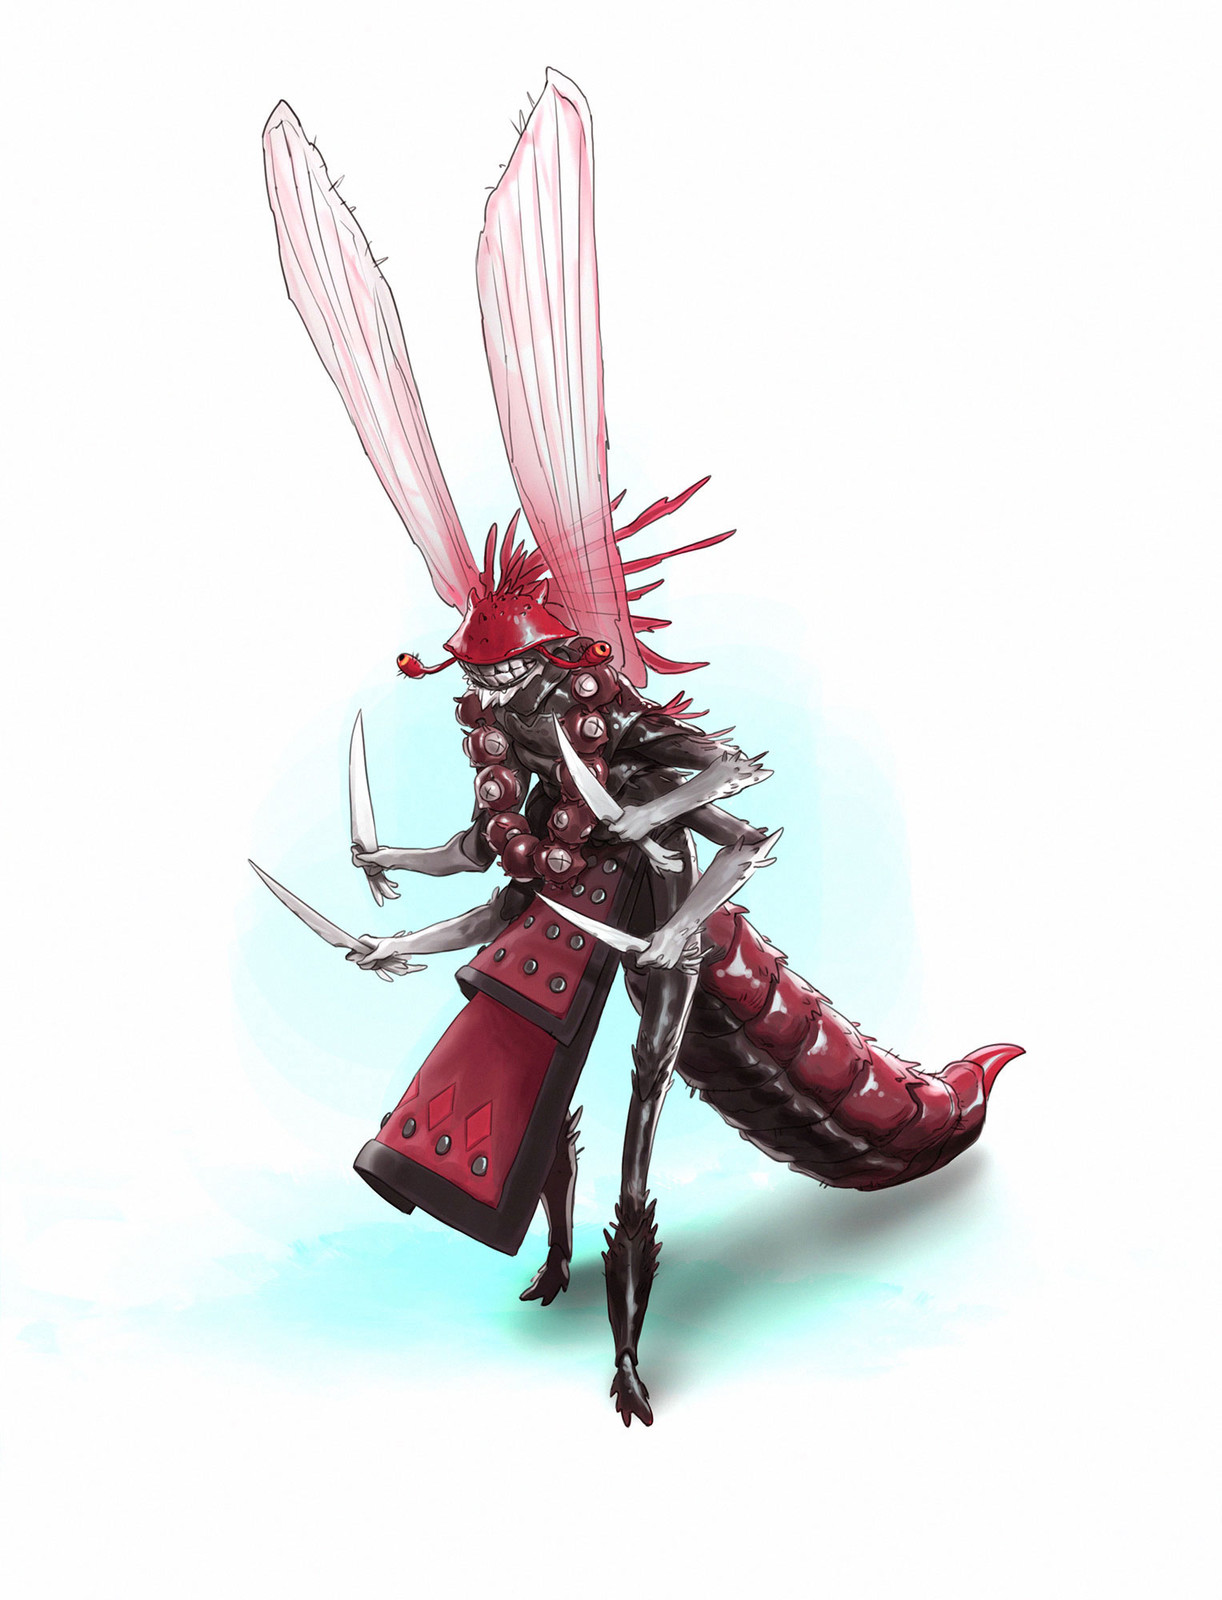 Insect Warrior for the CDChallenge